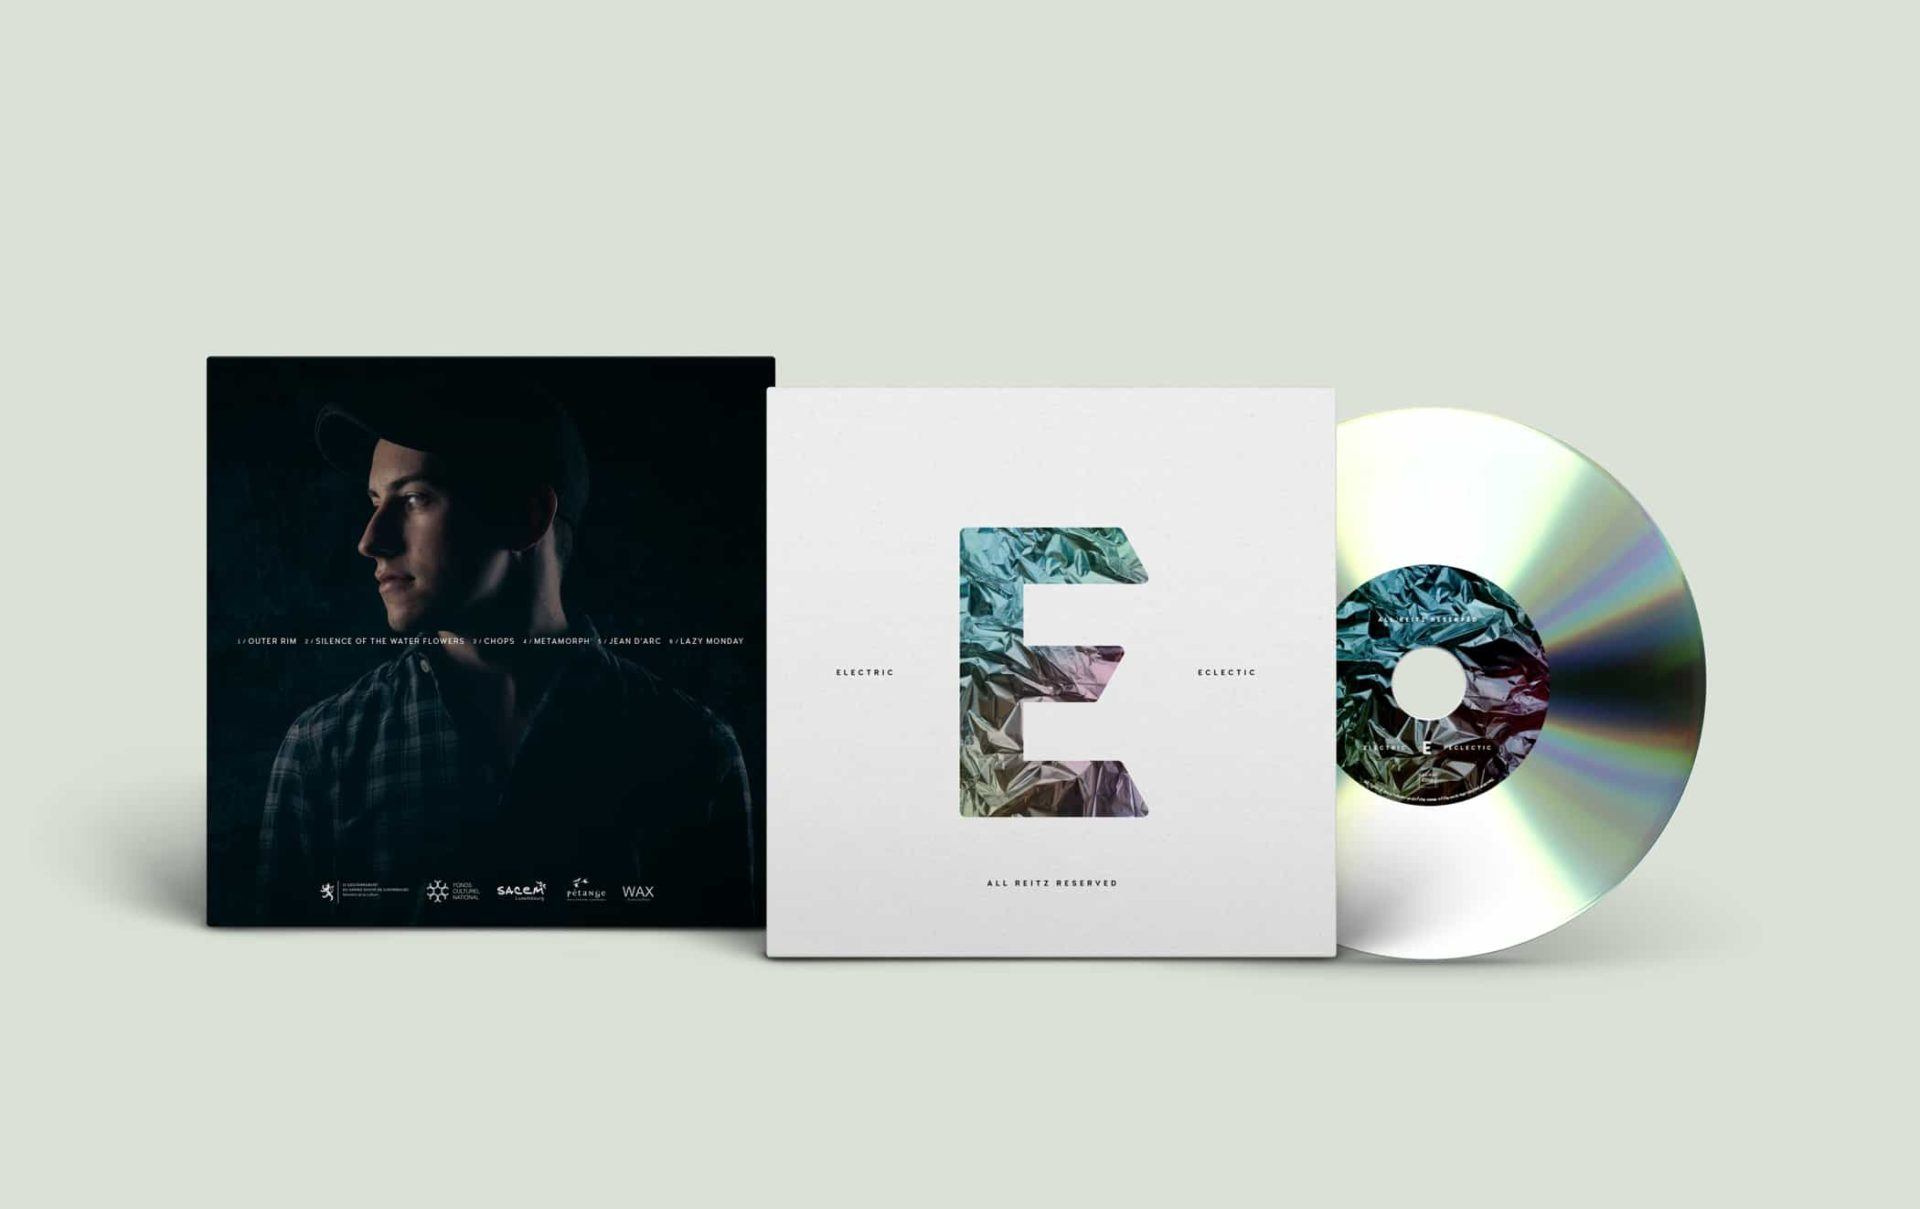 All-Reitz-Reserved-EP-MockUp-2